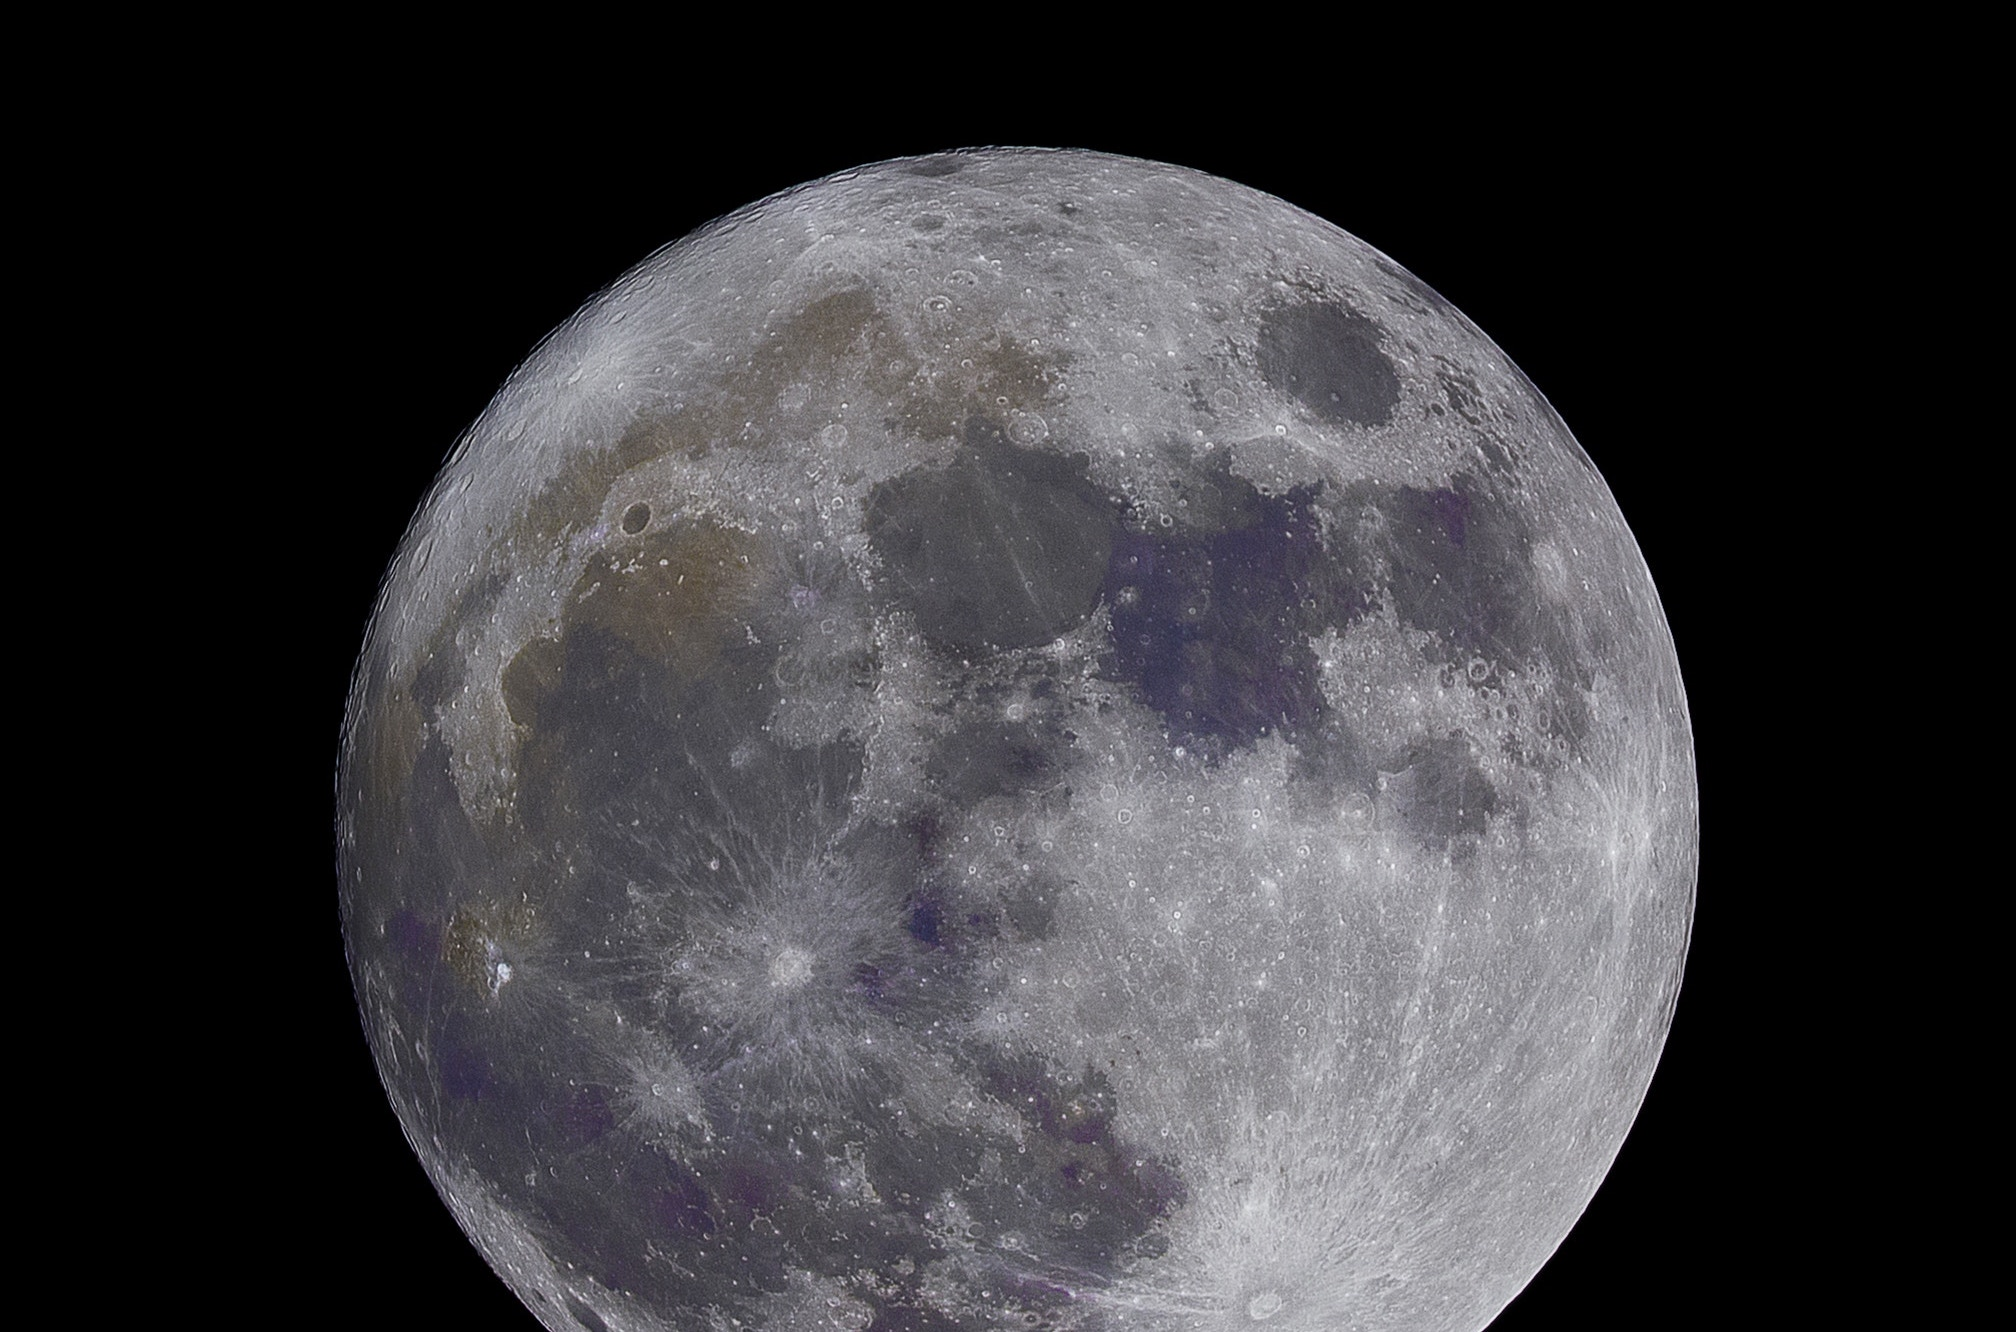 A photograph of the moon.